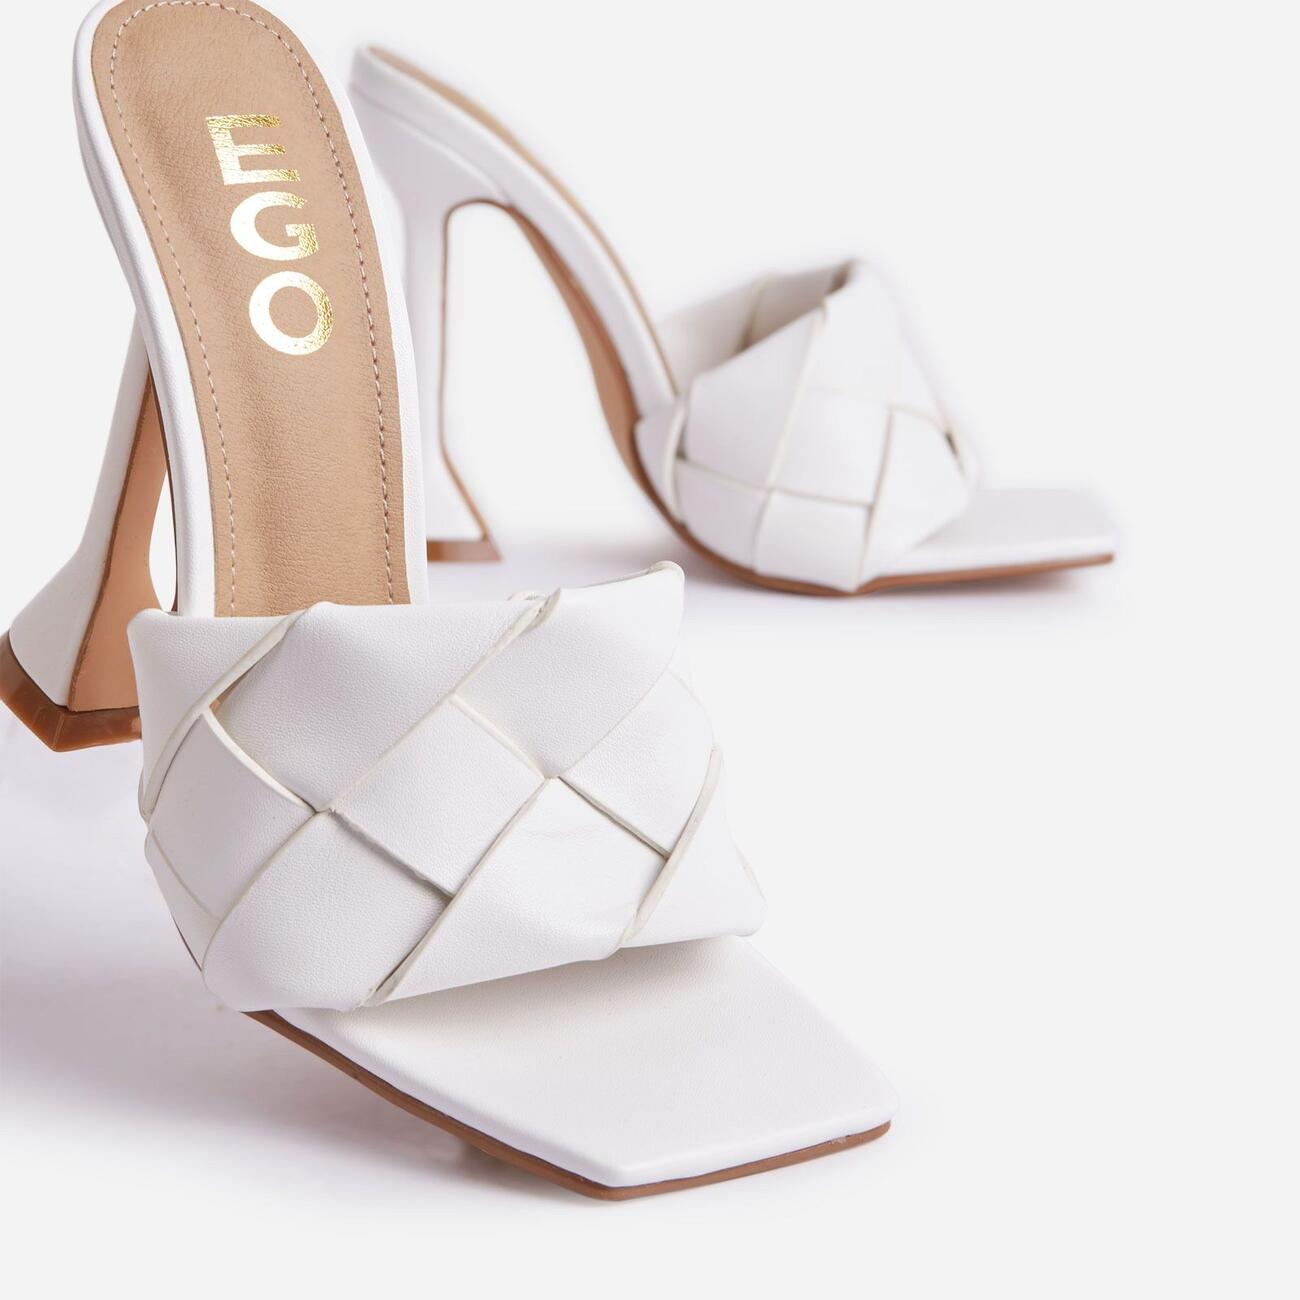 Handled Woven Square Peep Toe Pyramid Heel Mule In White Faux Leather Image 5